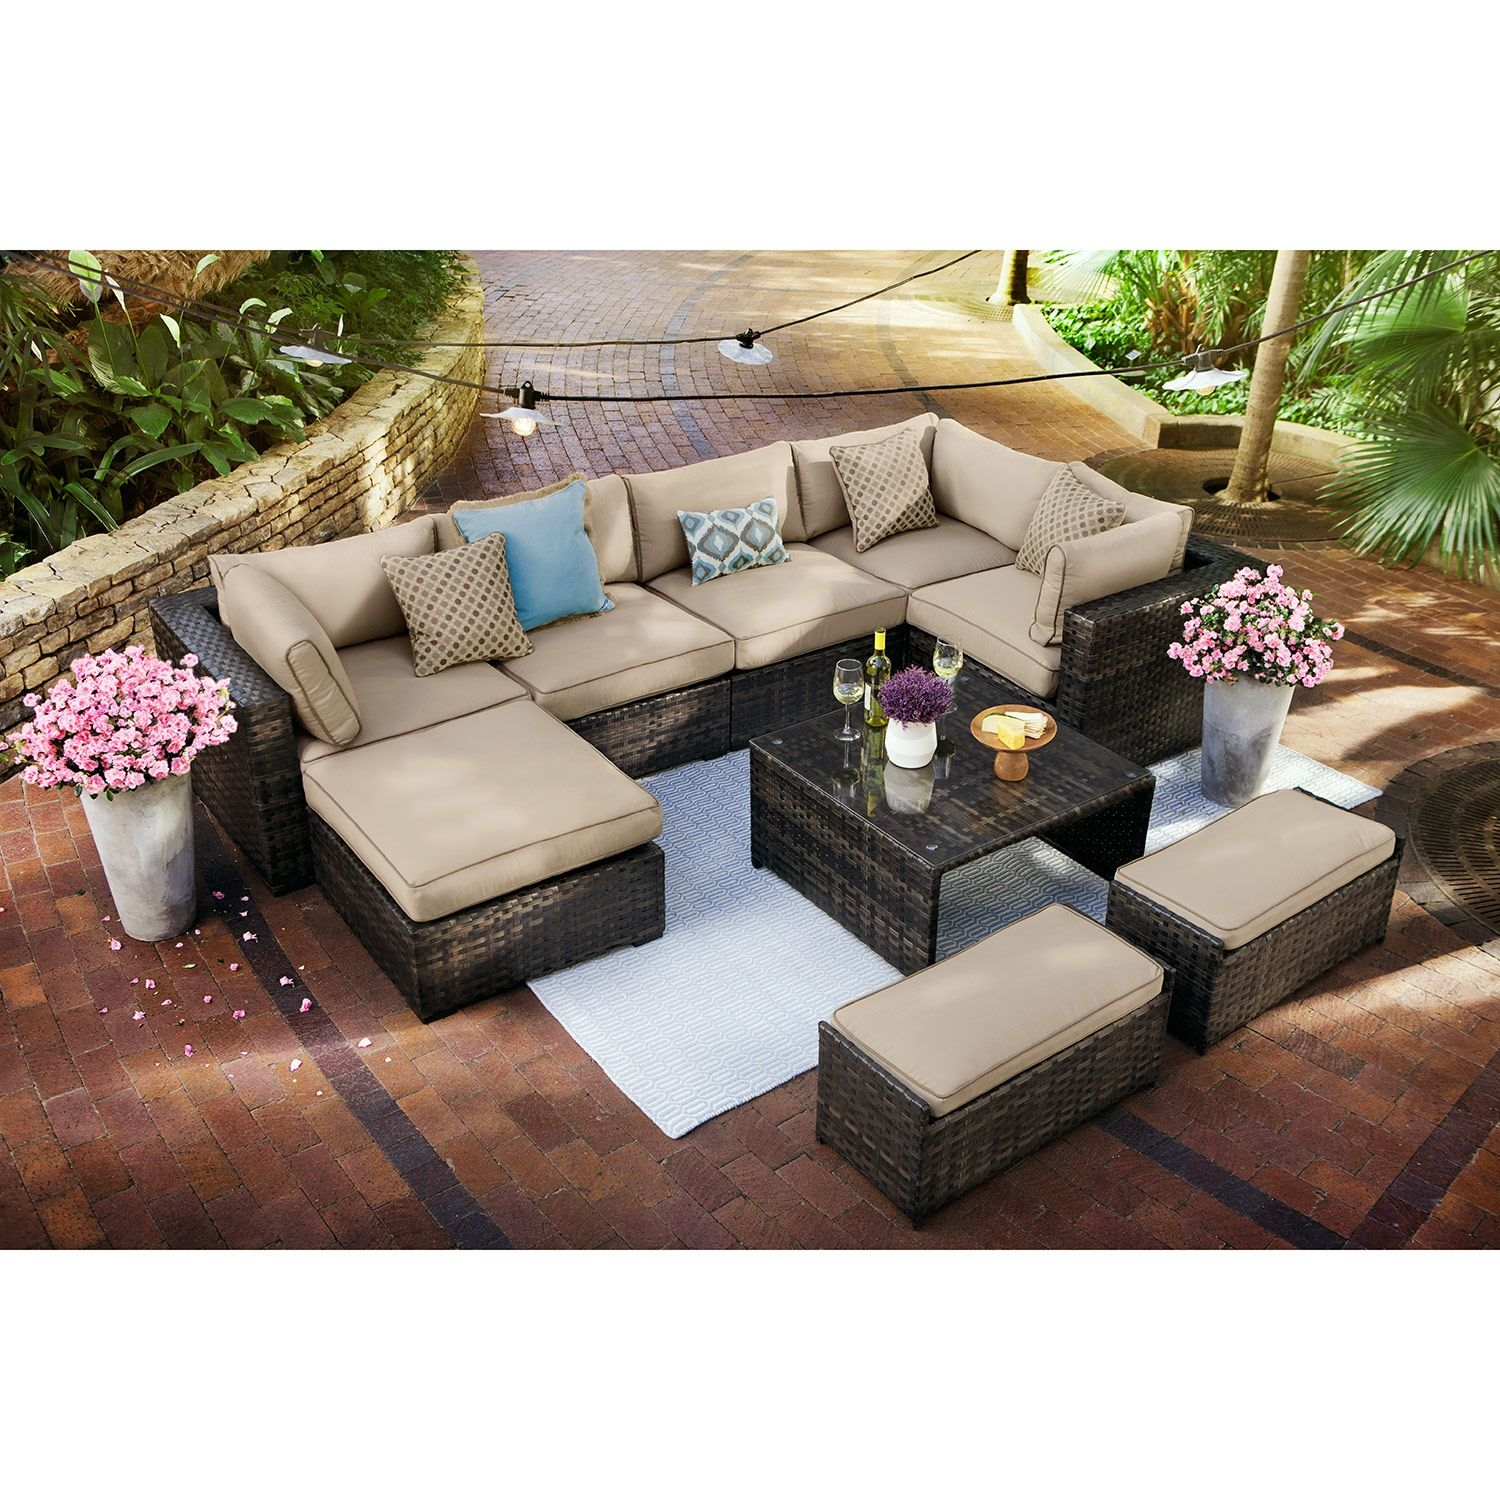 Your Spring Would Be 1000x Better With This Patio Set